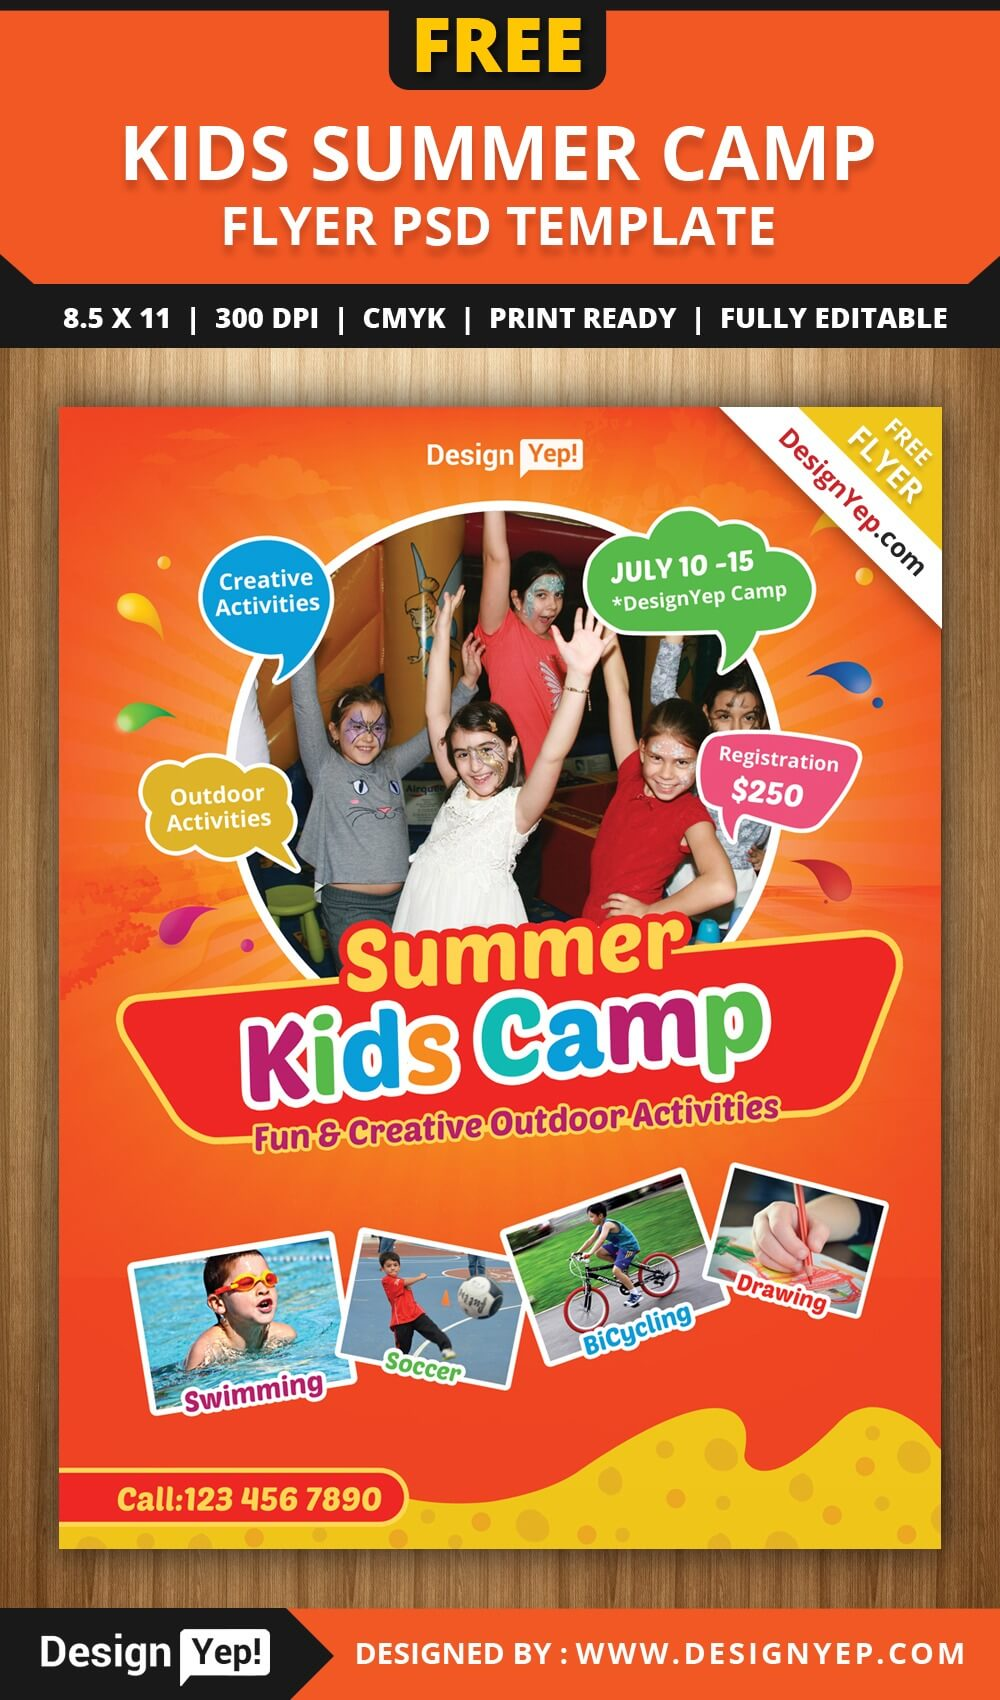 Free Kids Summer Camp Flyer Psd Template On Behance In Summer Camp Brochure Template Free Download